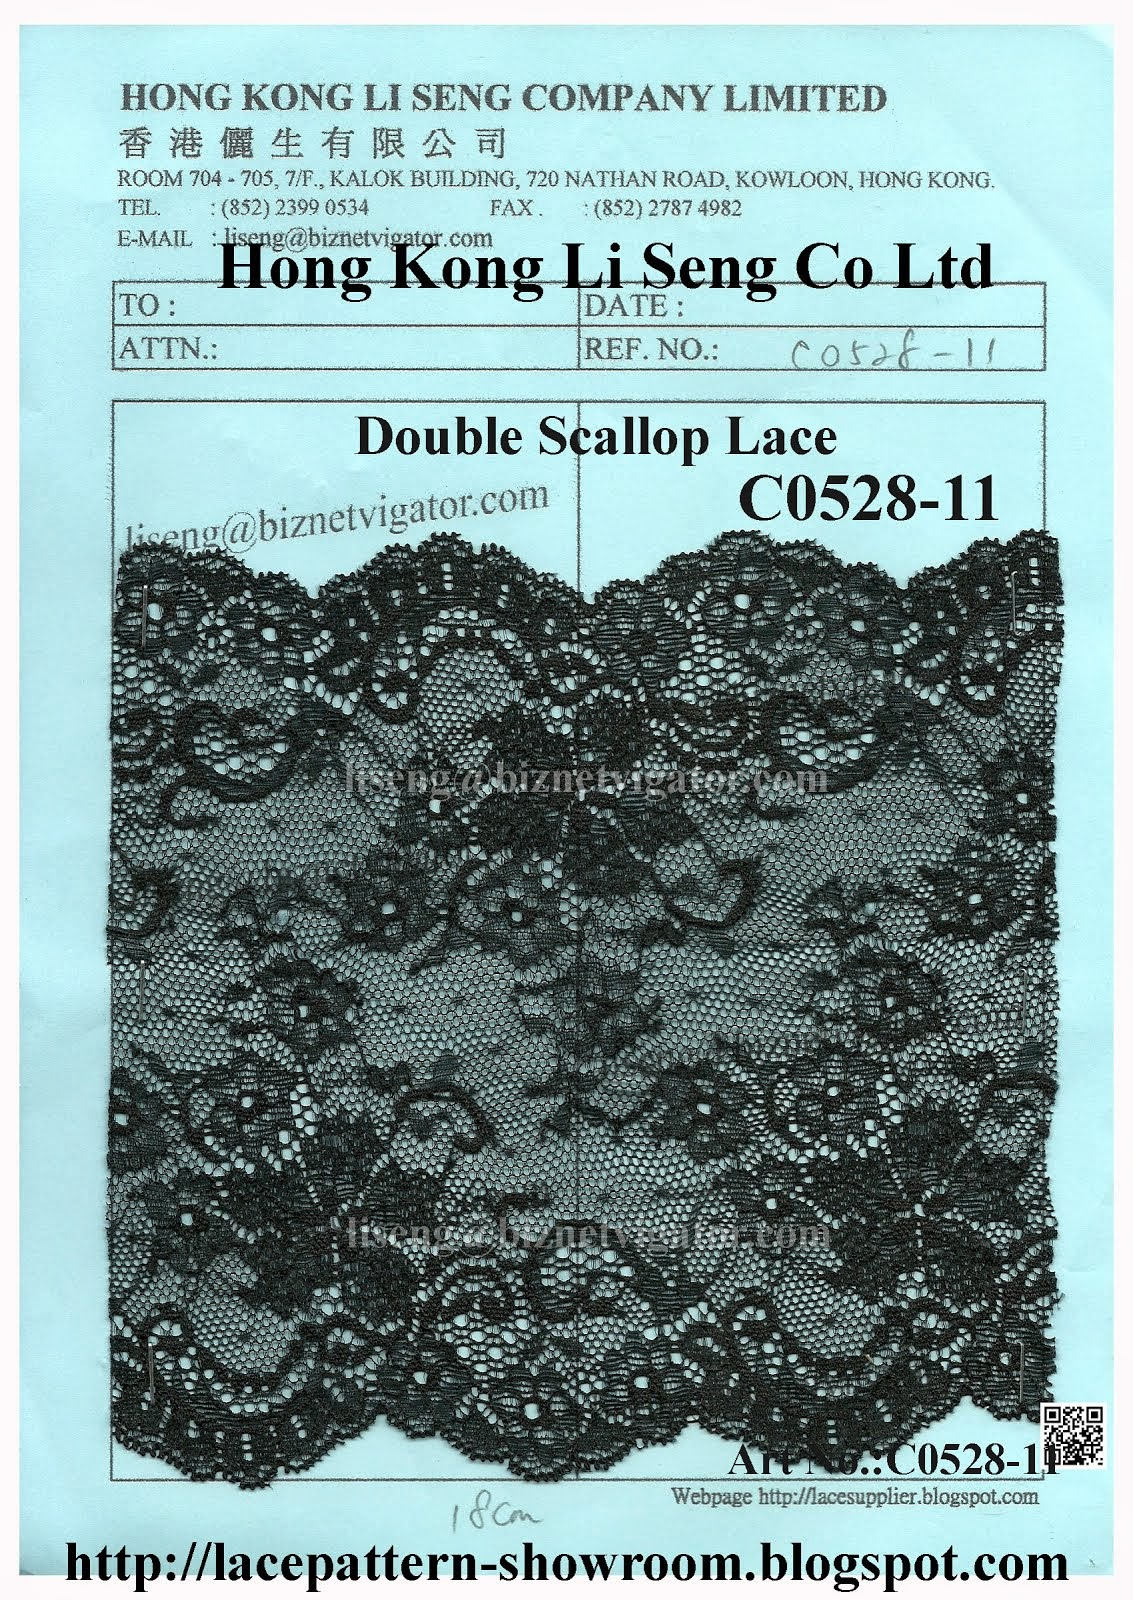 Double Scallop Non-Elastic Lace Trimming Manufacturer - Hong Kong Li Seng Co Ltd